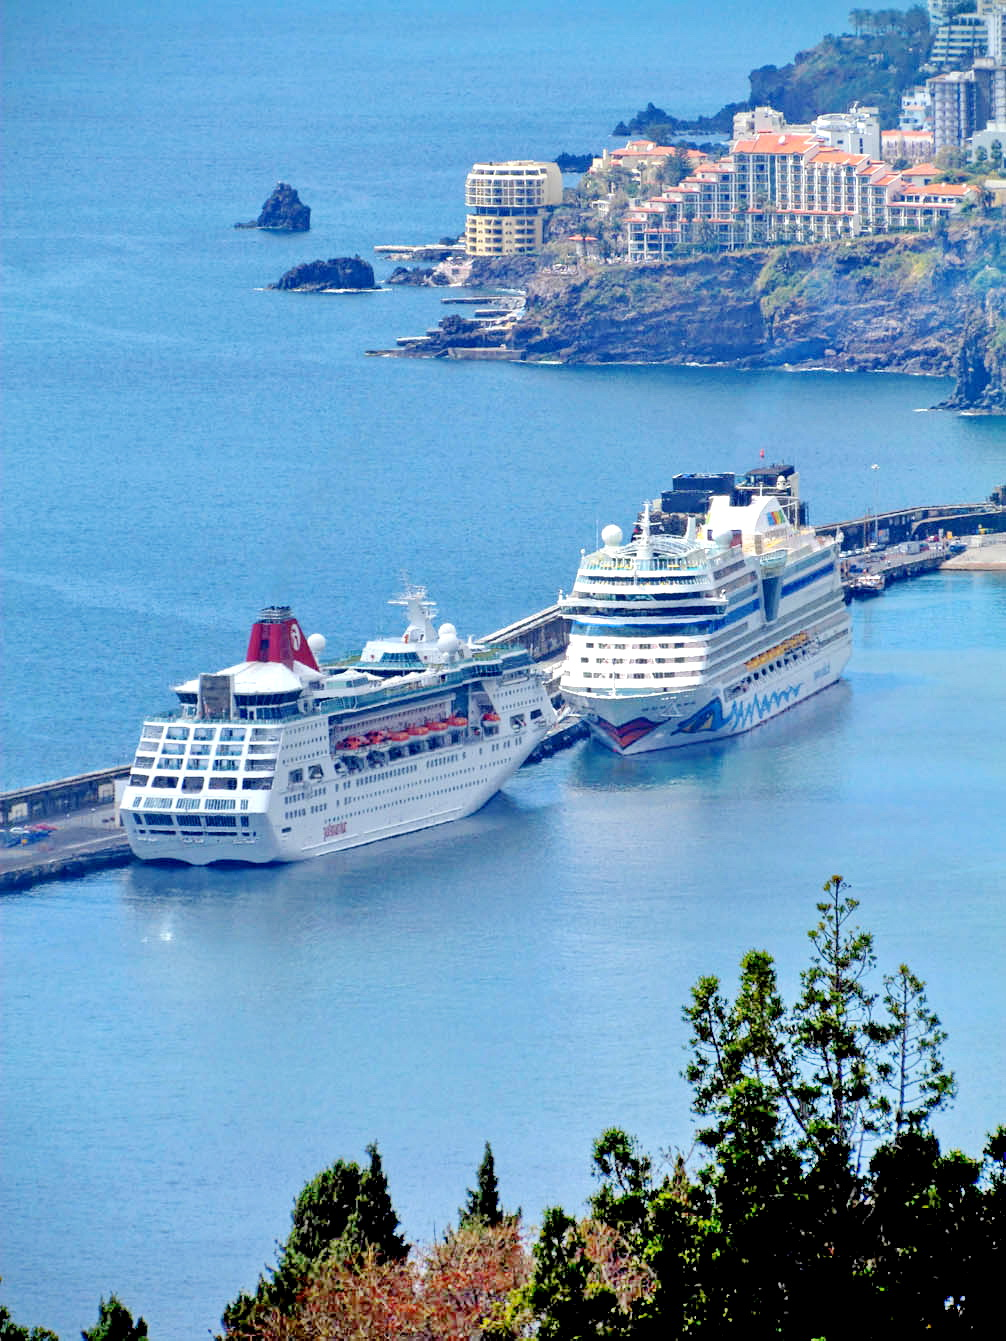 cruise ships and hotels in excellence touristic destination